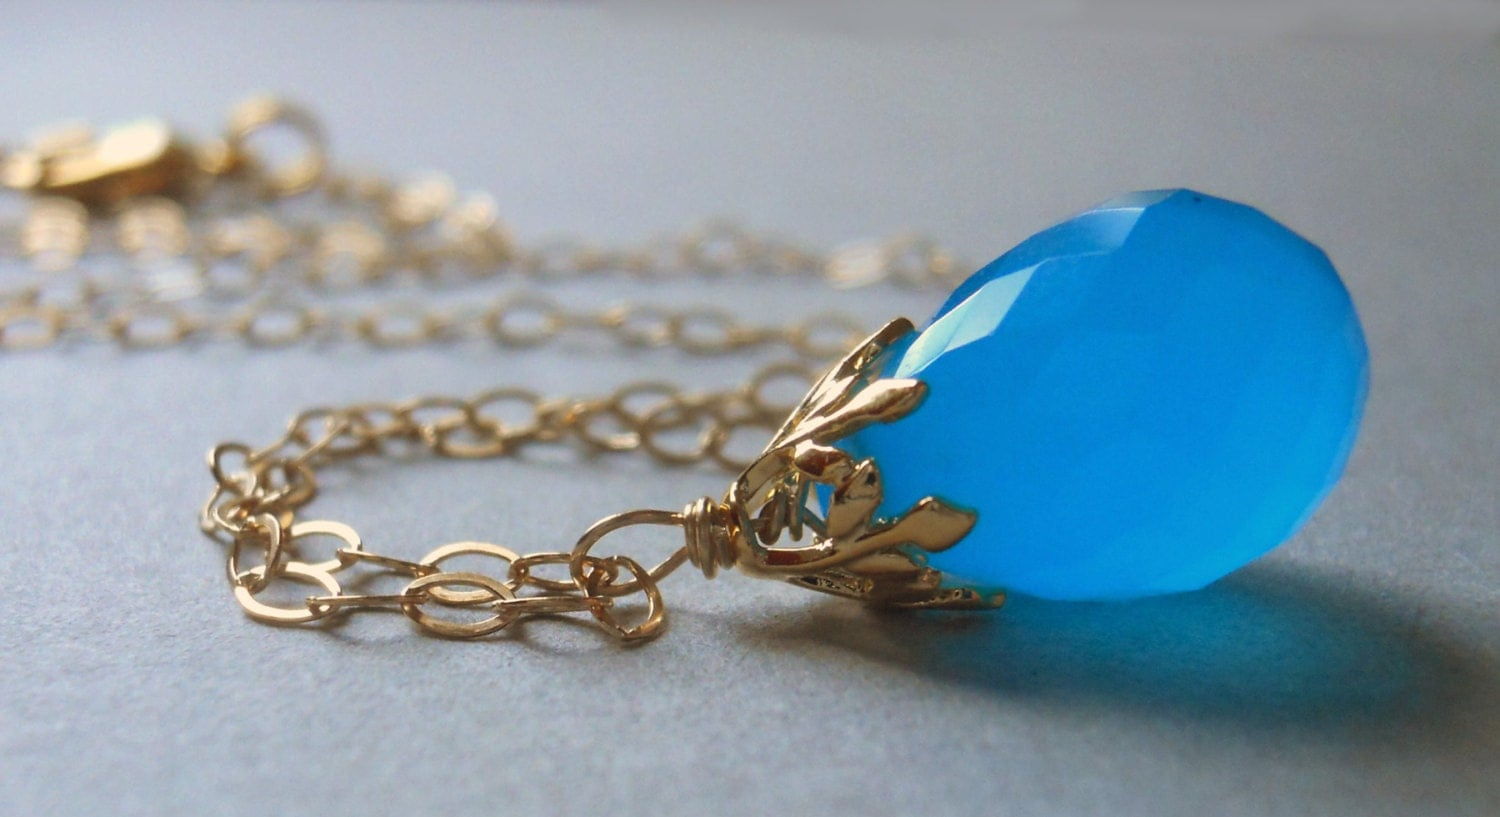 Fresh Air Bright Blue Chalcedony Teardrop necklace Gold - $62.00 USD